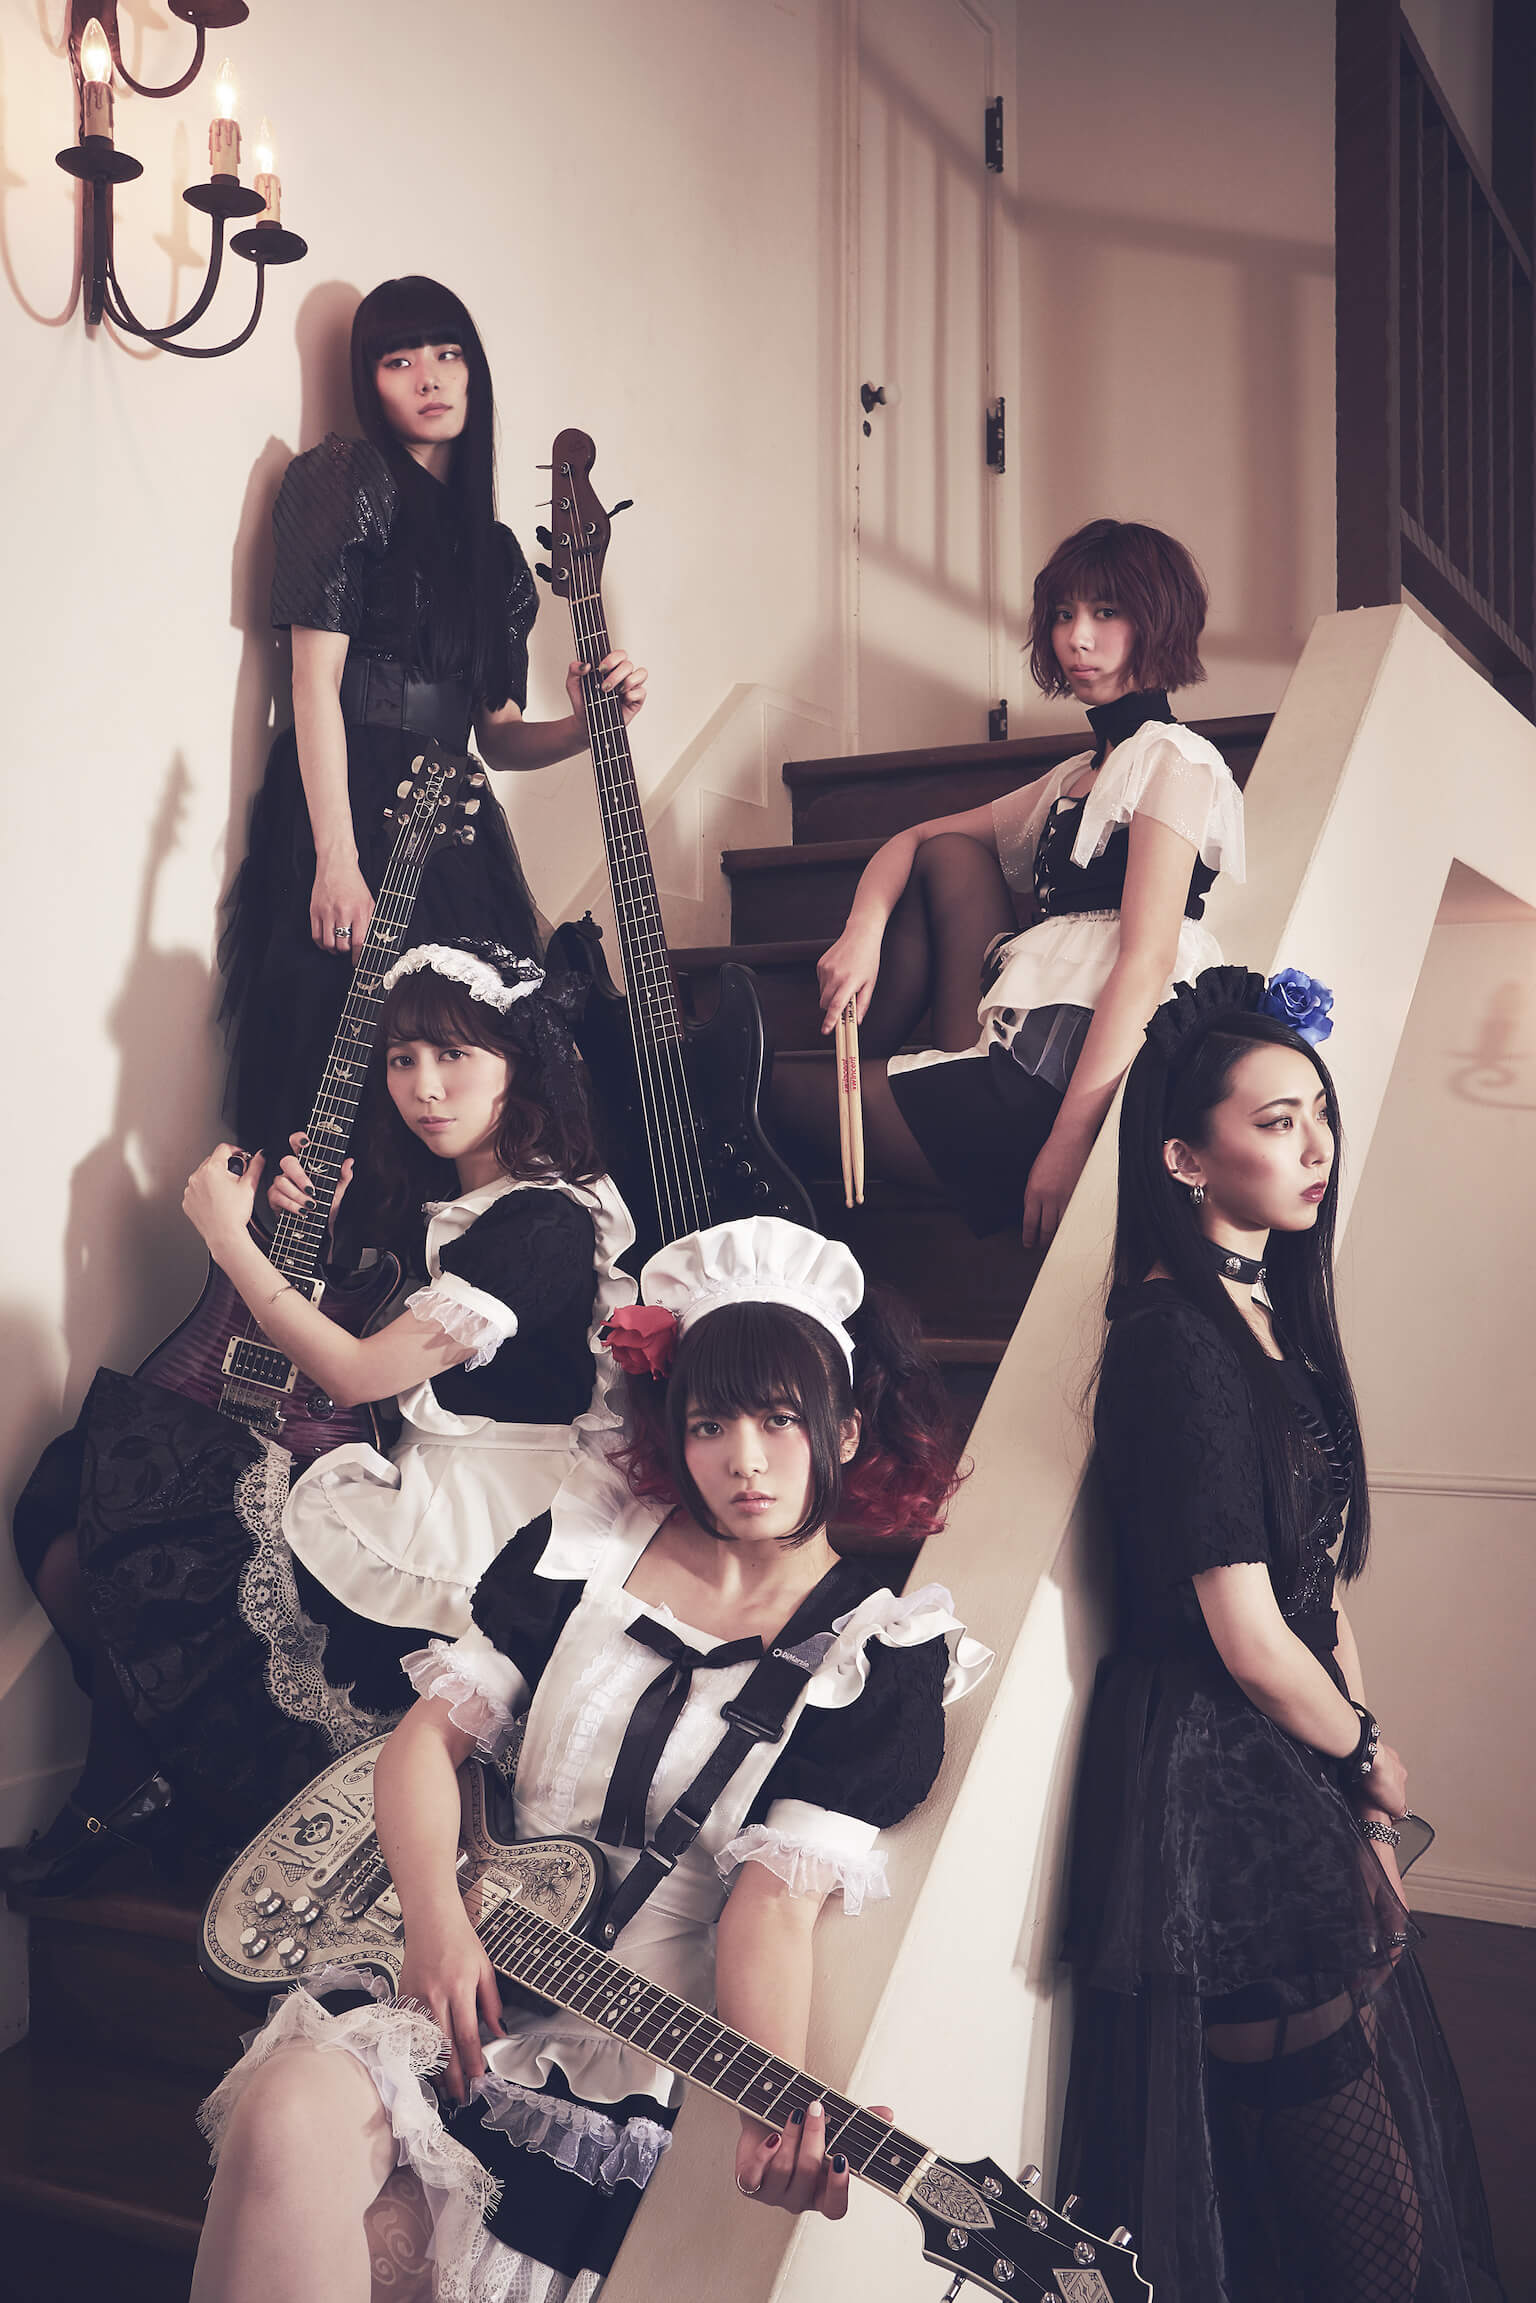 Concert Review: BAND-MAID Announce New Album For December 2019